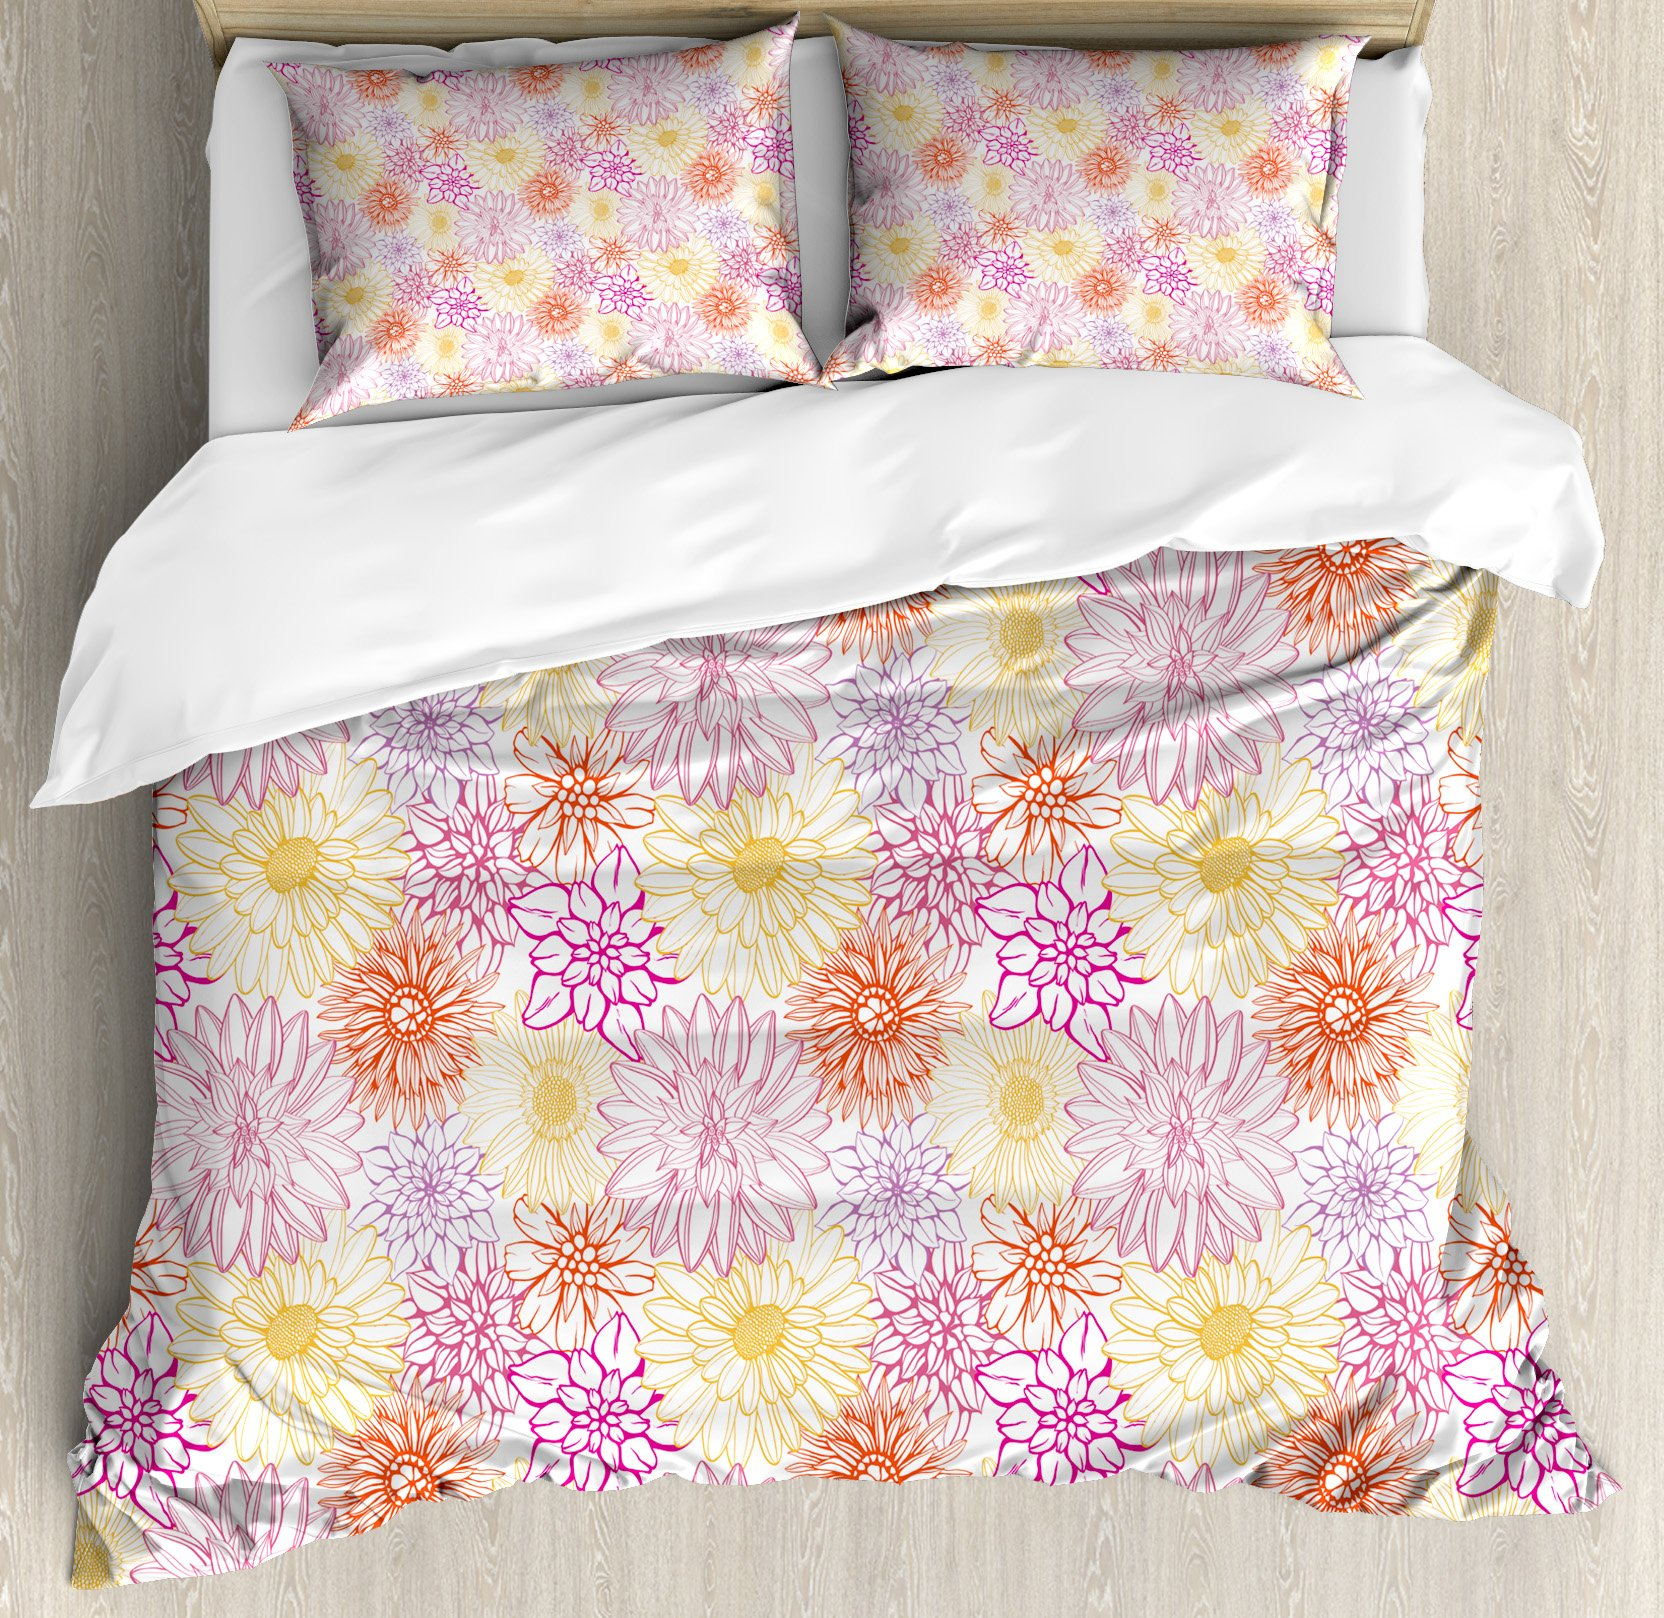 Floral King Size Duvet Cover Set by Ambesonne, Blossom Spa Gardening Theme Flower Petals Essence Bouquet Art, Decorative 3 Piece Bedding Set with 2 Pillow Shams, Pale Yellow Dark Coral Fuchsia